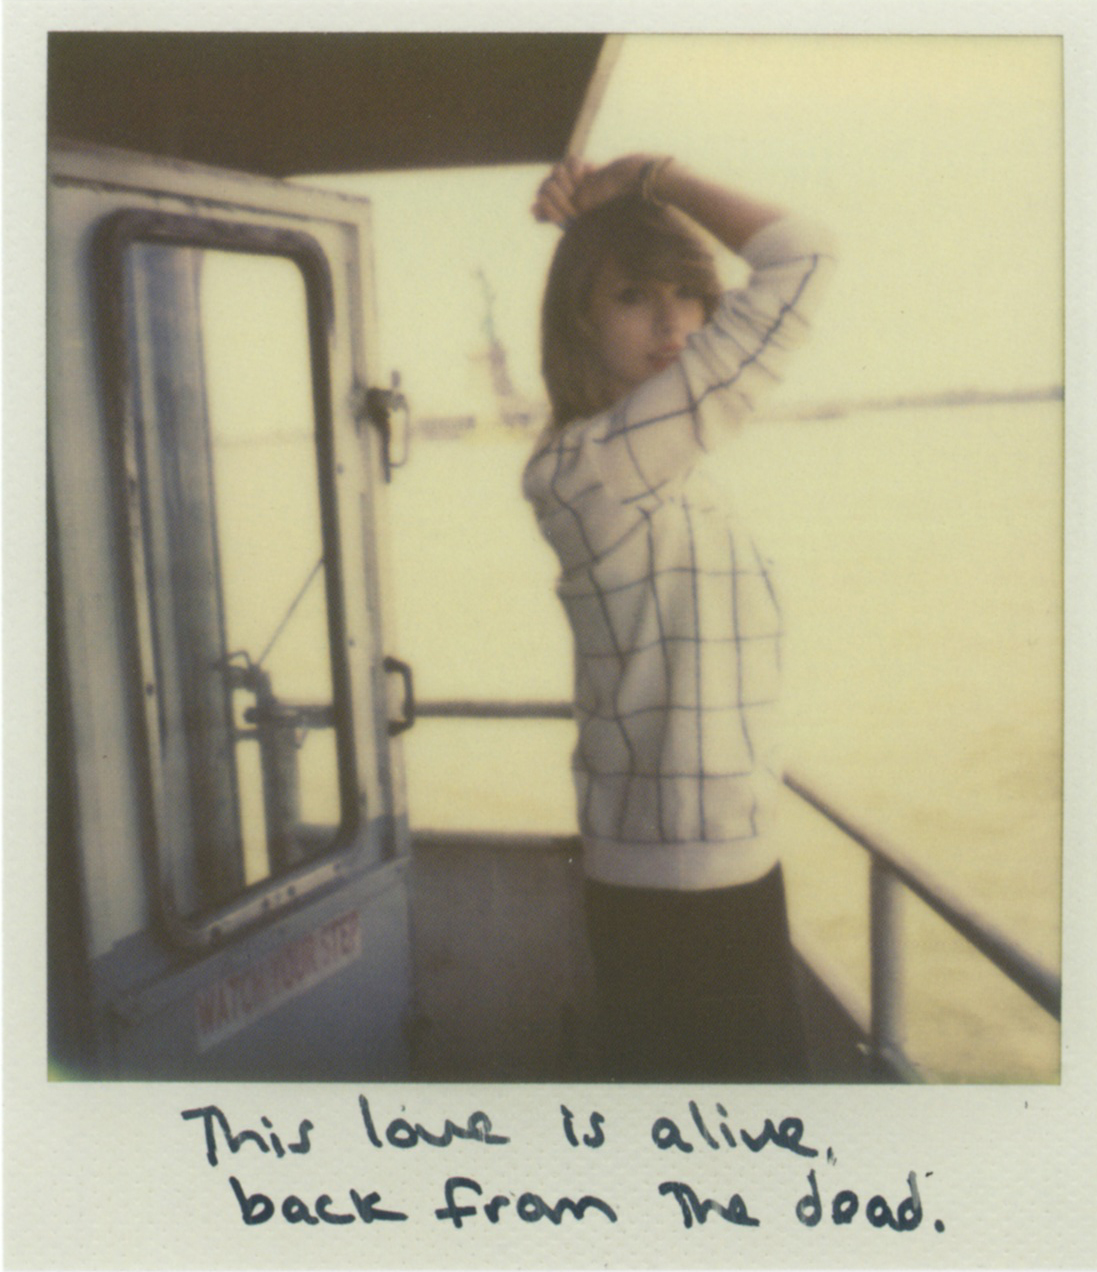 Taylor Swift this love